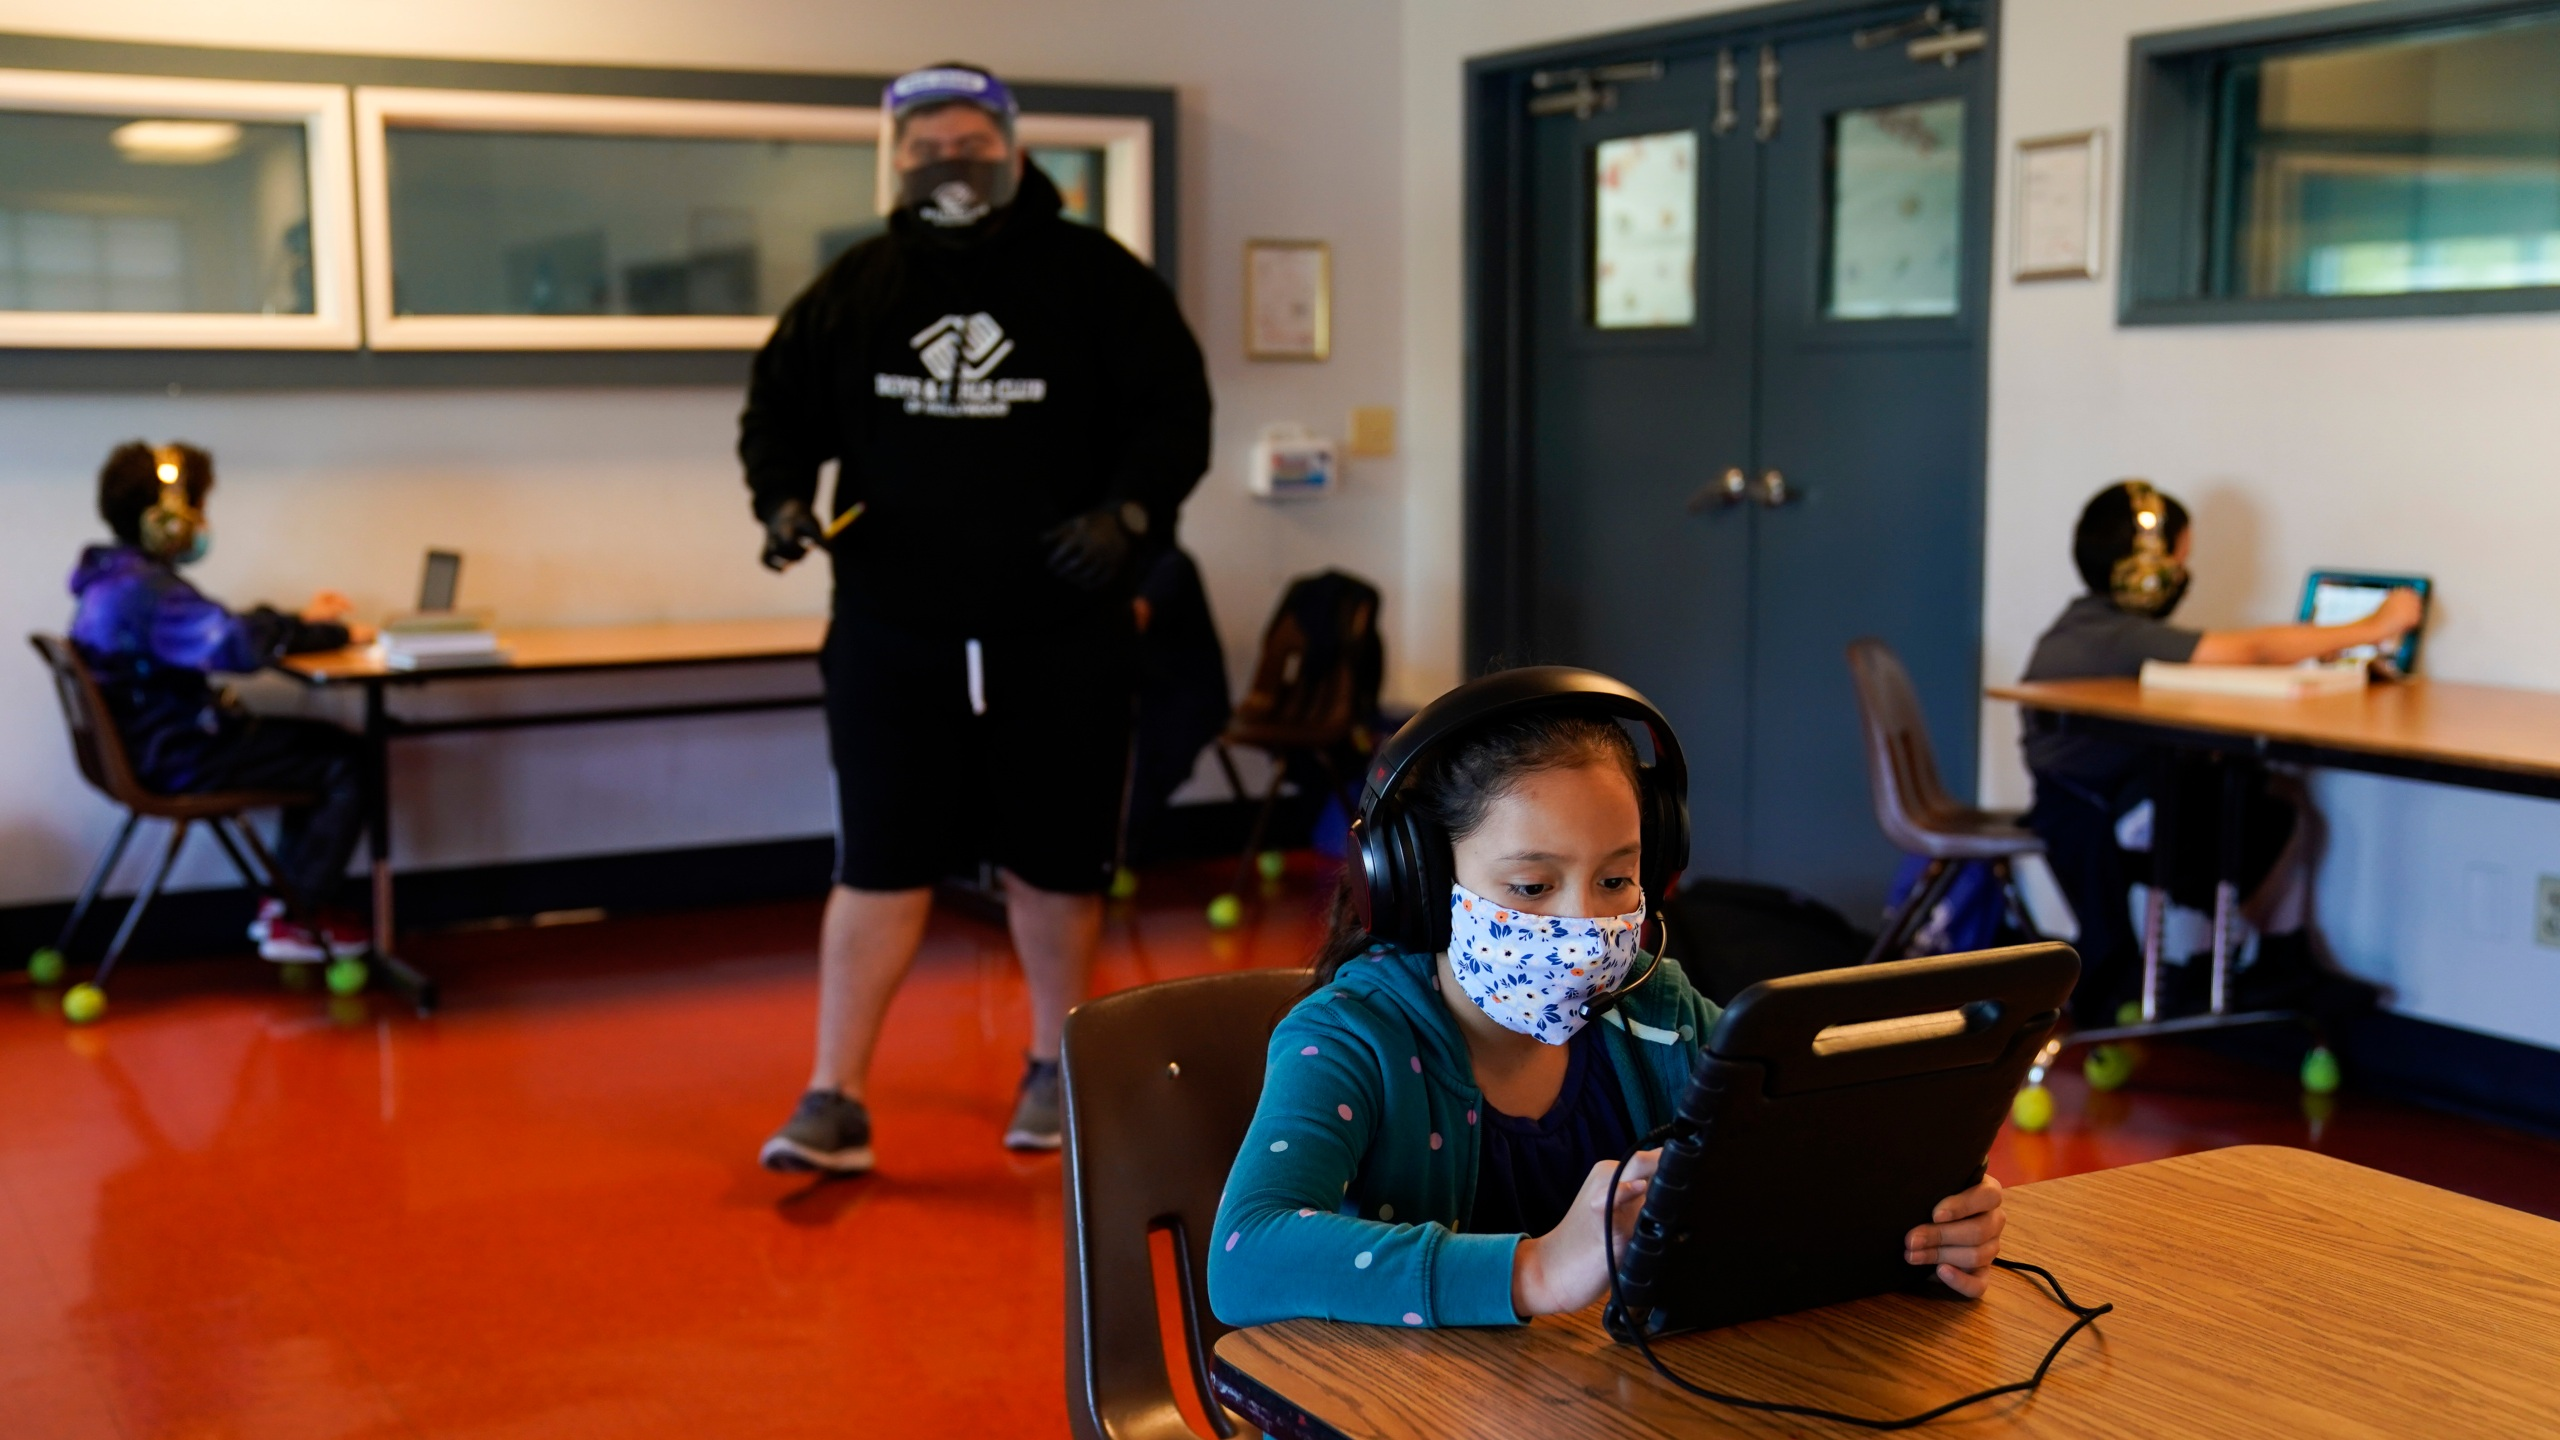 Los Angeles Unified School District students attend online classes at the Boys & Girls Club of Hollywood on Aug. 26, 2020. (Jae C. Hong / Associated Press)